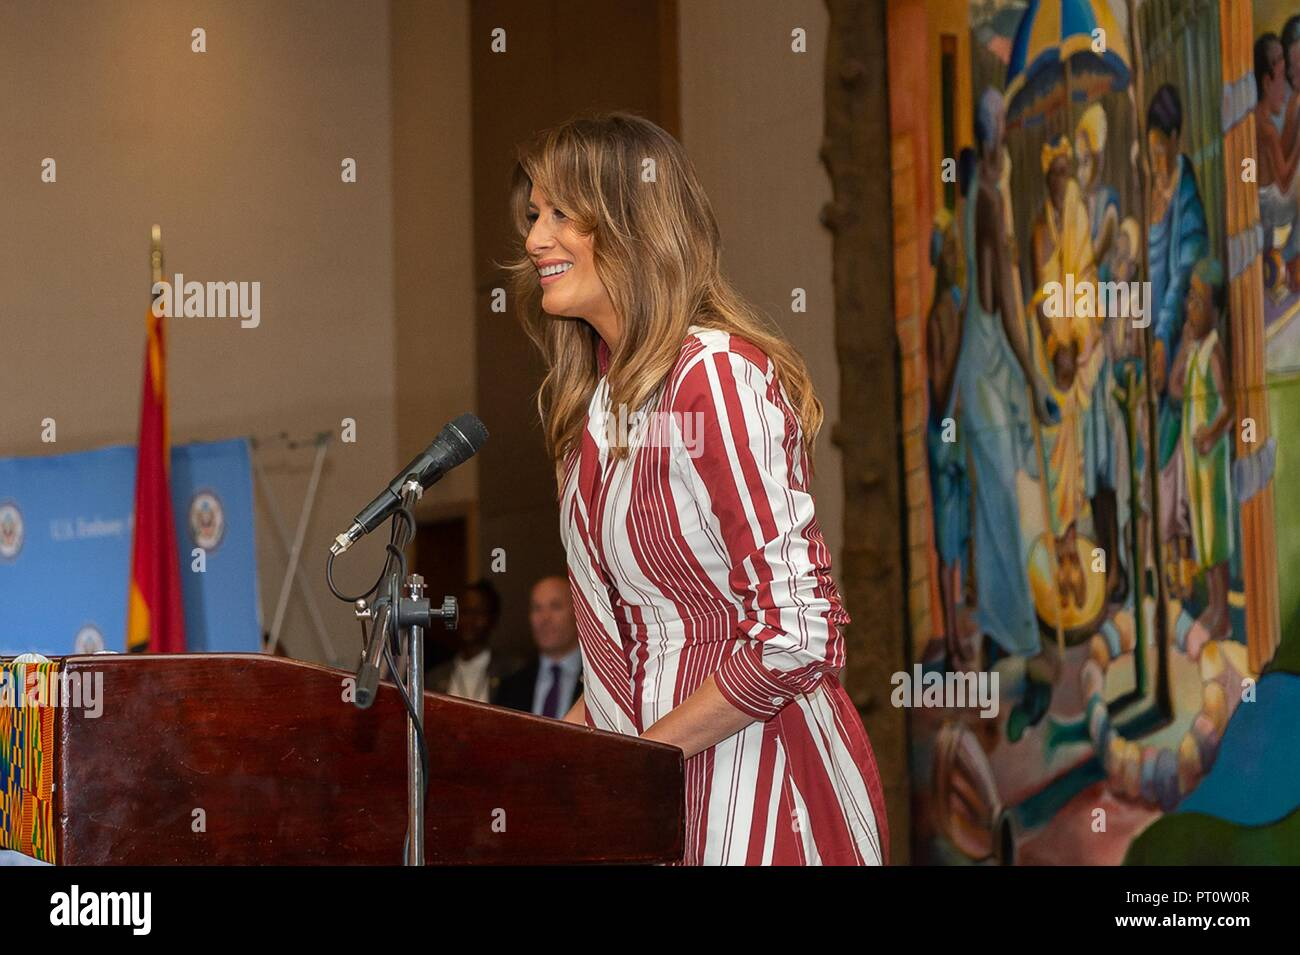 U.S First Lady Melania Trump speaks during a U.S. Embassy Ghana employee meet and greet at the Movenpick Ambassador Hotel October 2, 2018 in Accra, Ghana. This is the first solo international trip by the First Lady. - Stock Image